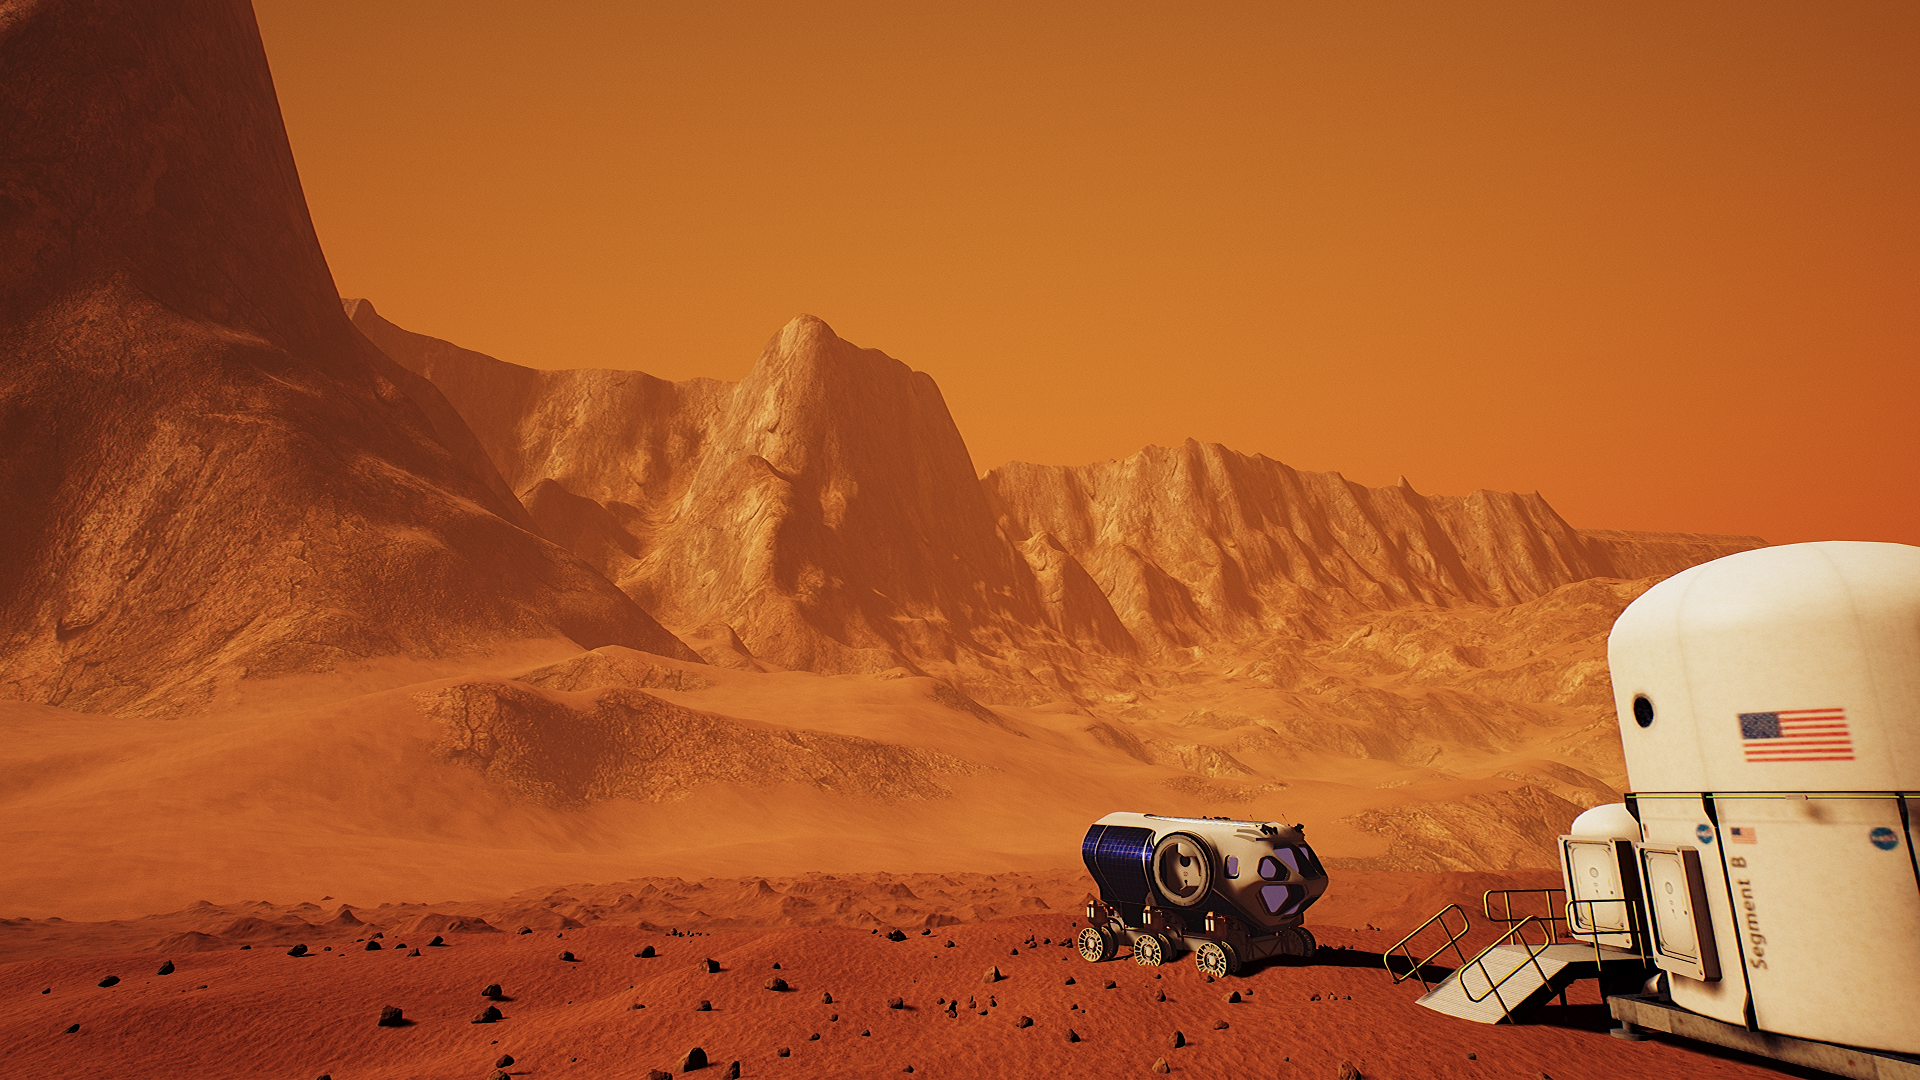 NASA has teamed up with Fusion and MIT to create a virtual reality experience that puts users on Mars.